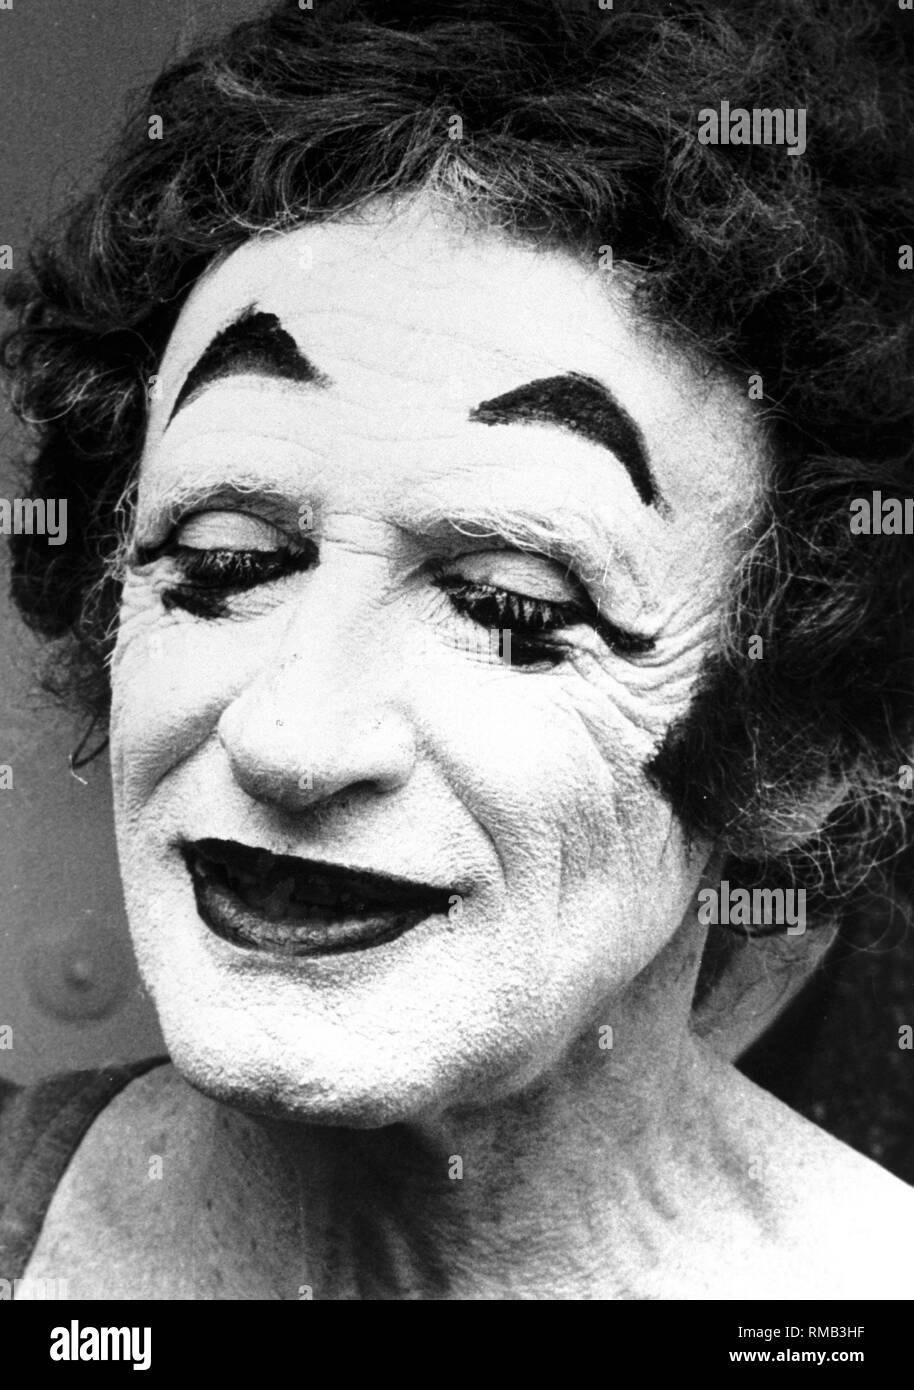 The French pantomime Marcel Marceau. - Stock Image